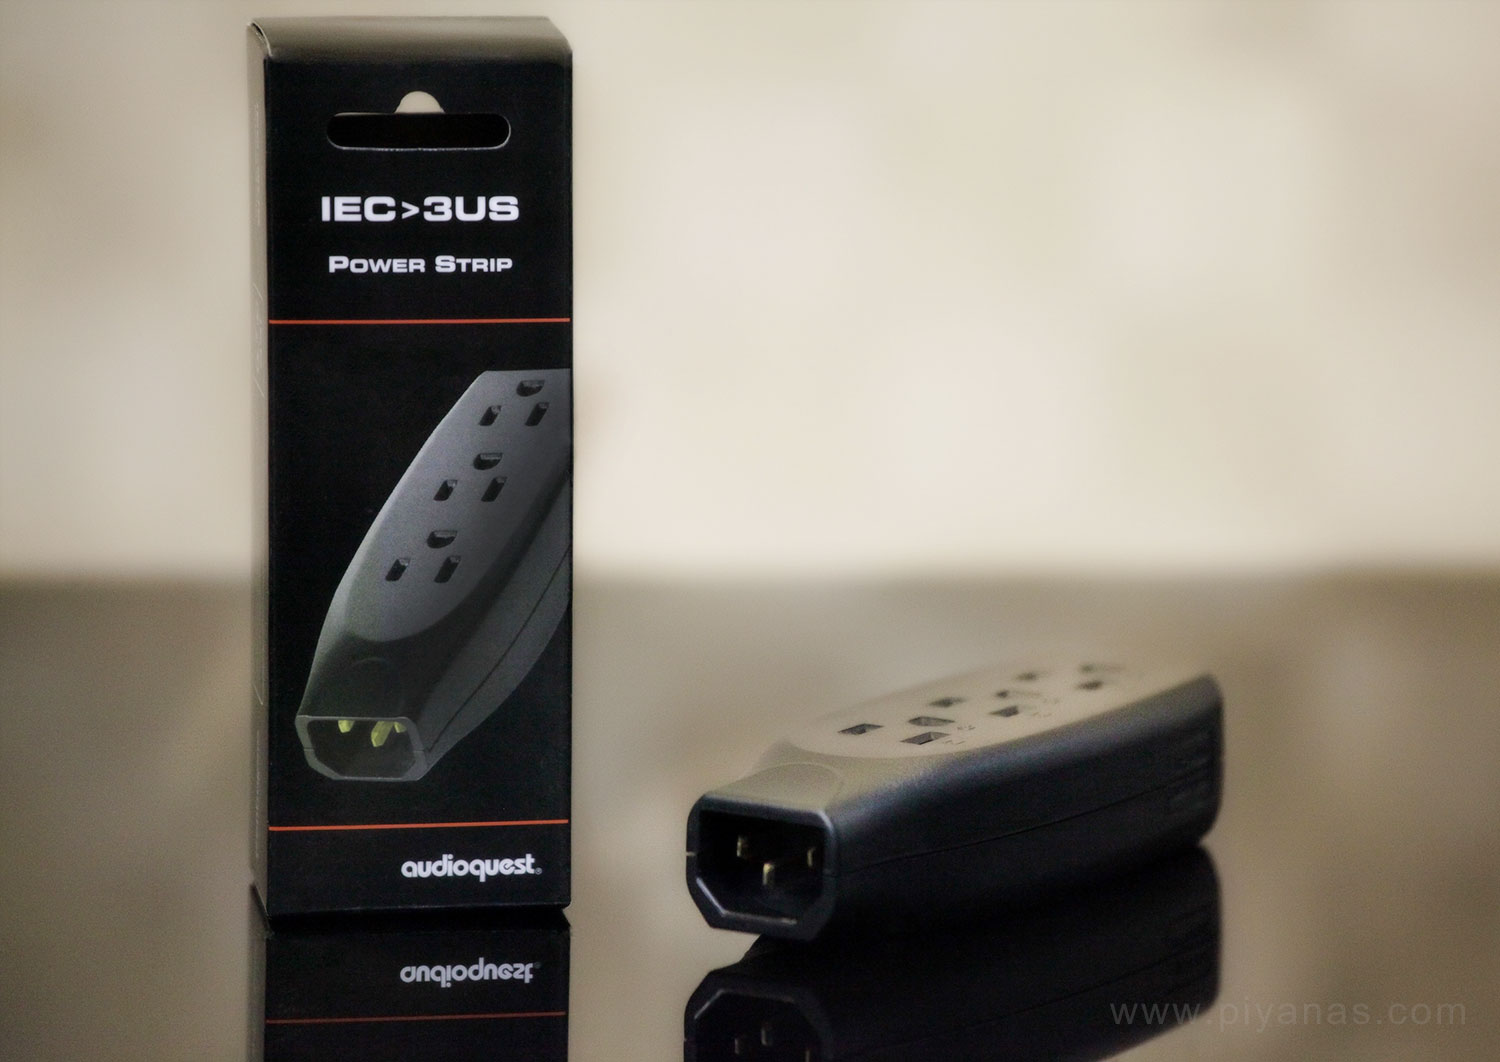 IEC 3 US Power Strip